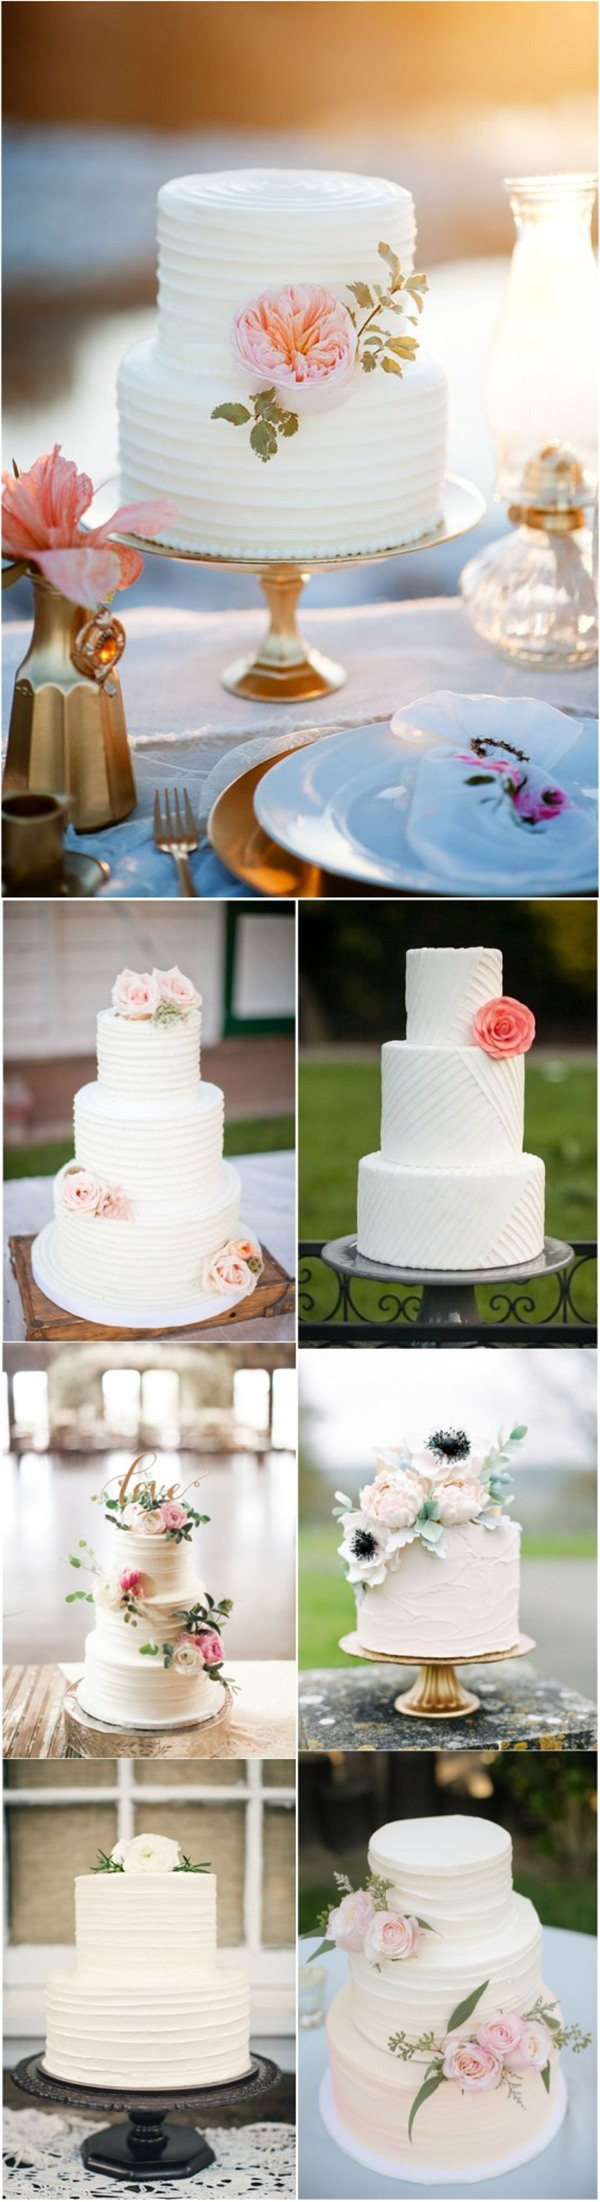 simple wedding cake ideas 2016 20 simple wedding idea inspirations 20063